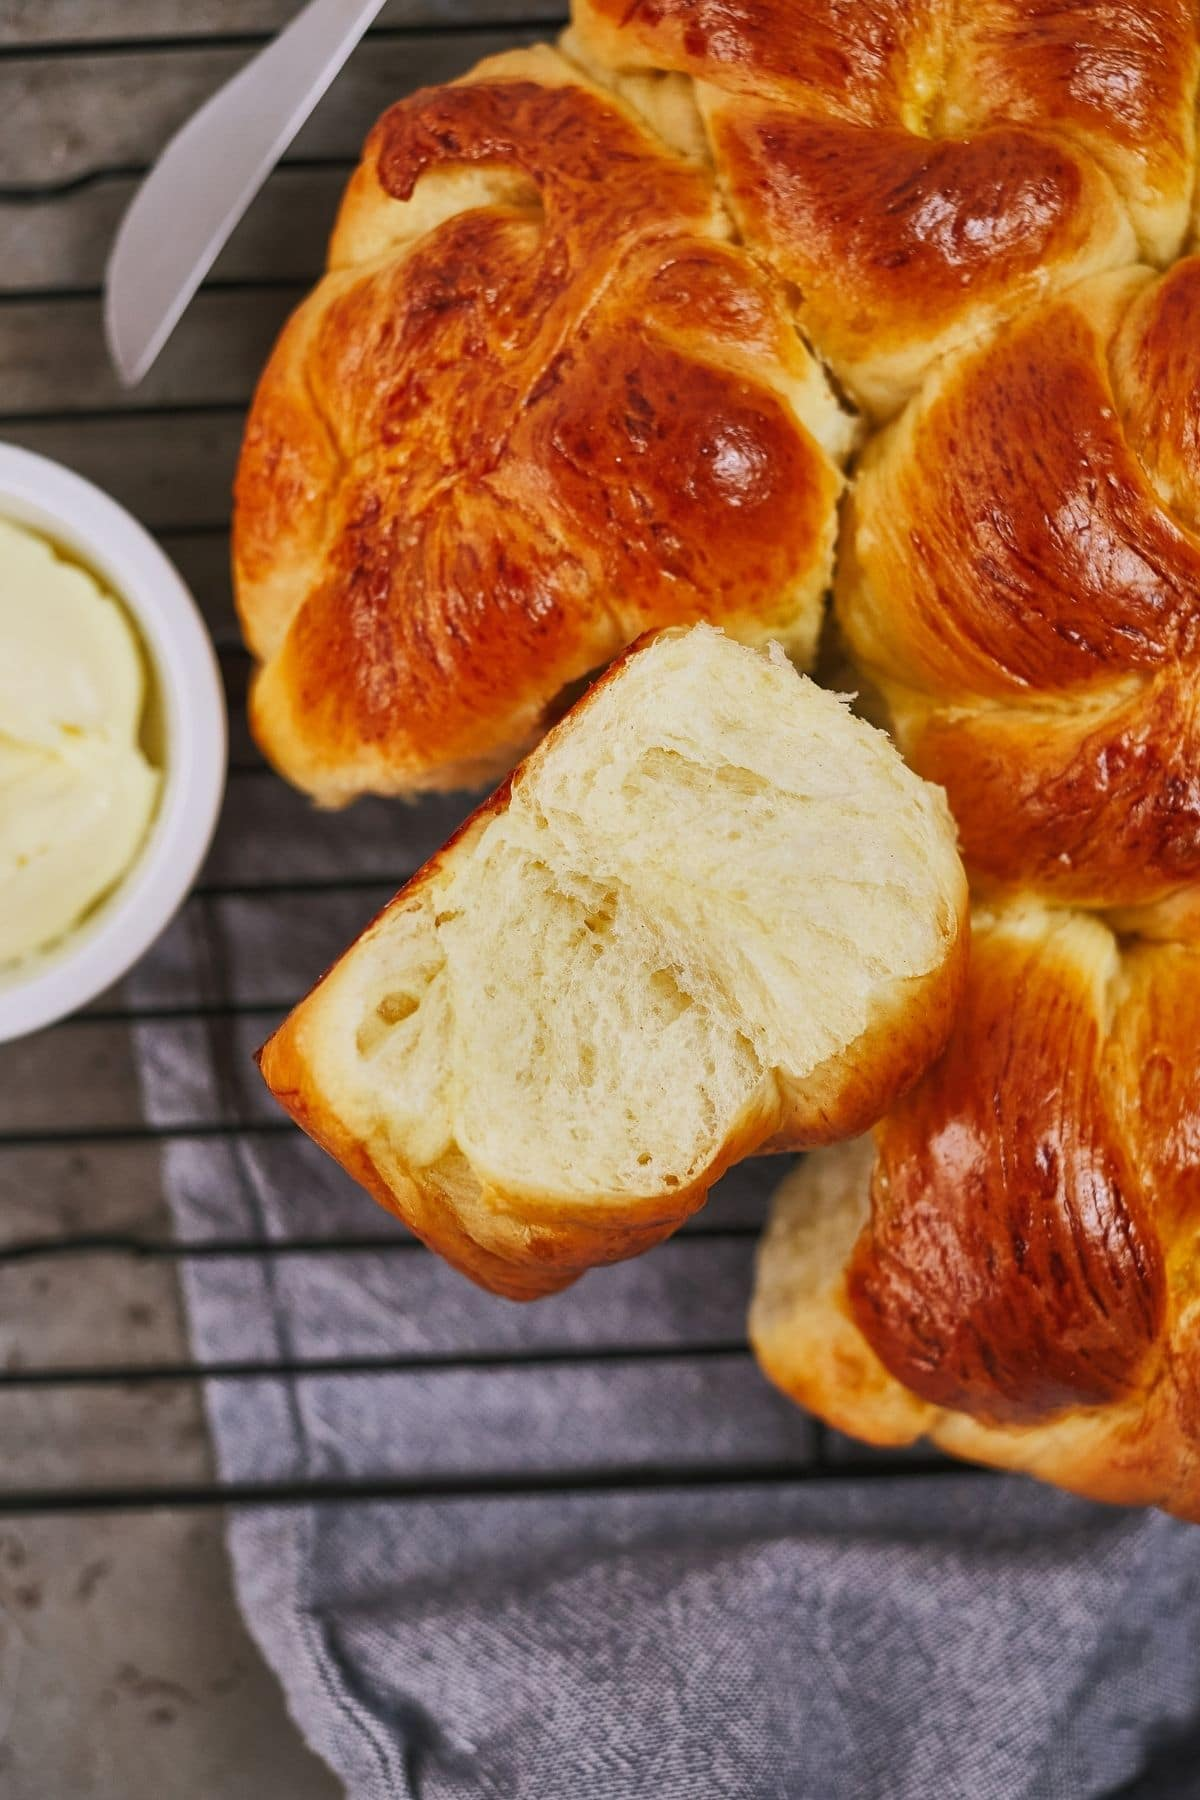 hot rolls with one on its side next to bowl of butter on wire rack